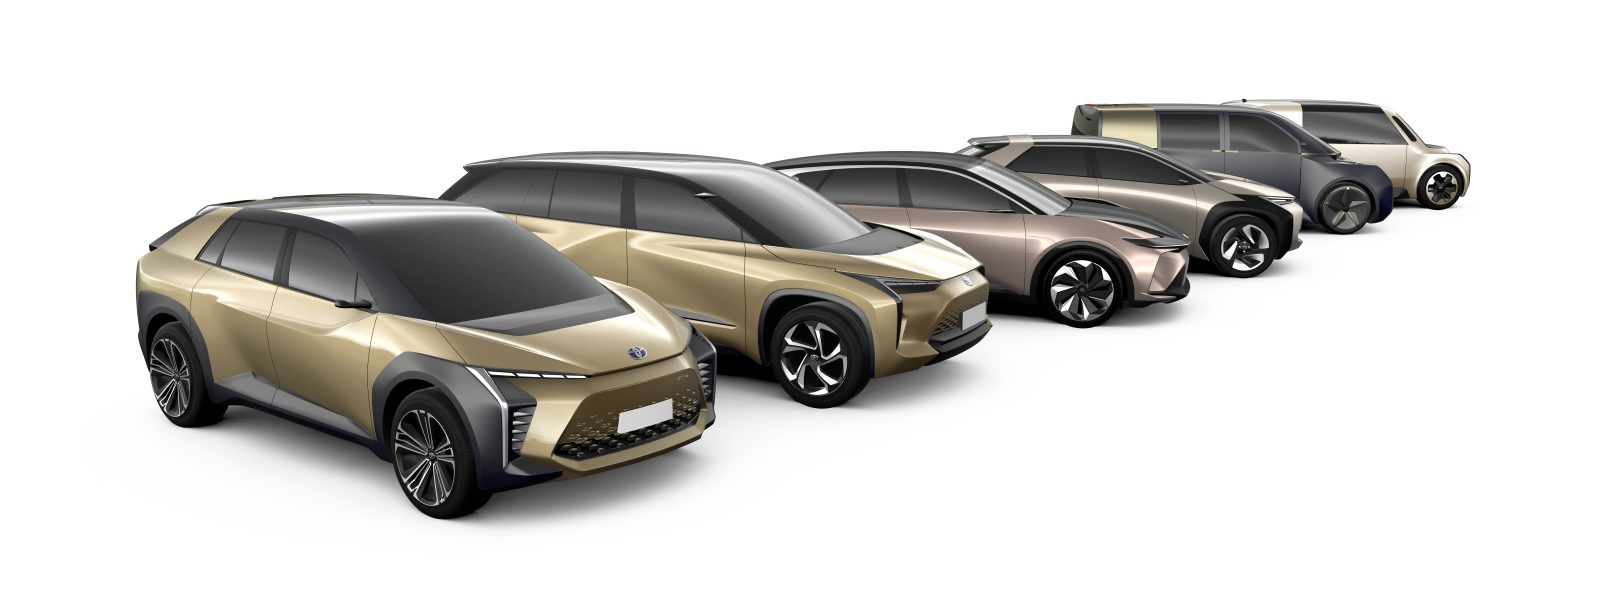 Toyota unveils images of upcoming all-electric cars, accelerates EV plans by 5 years